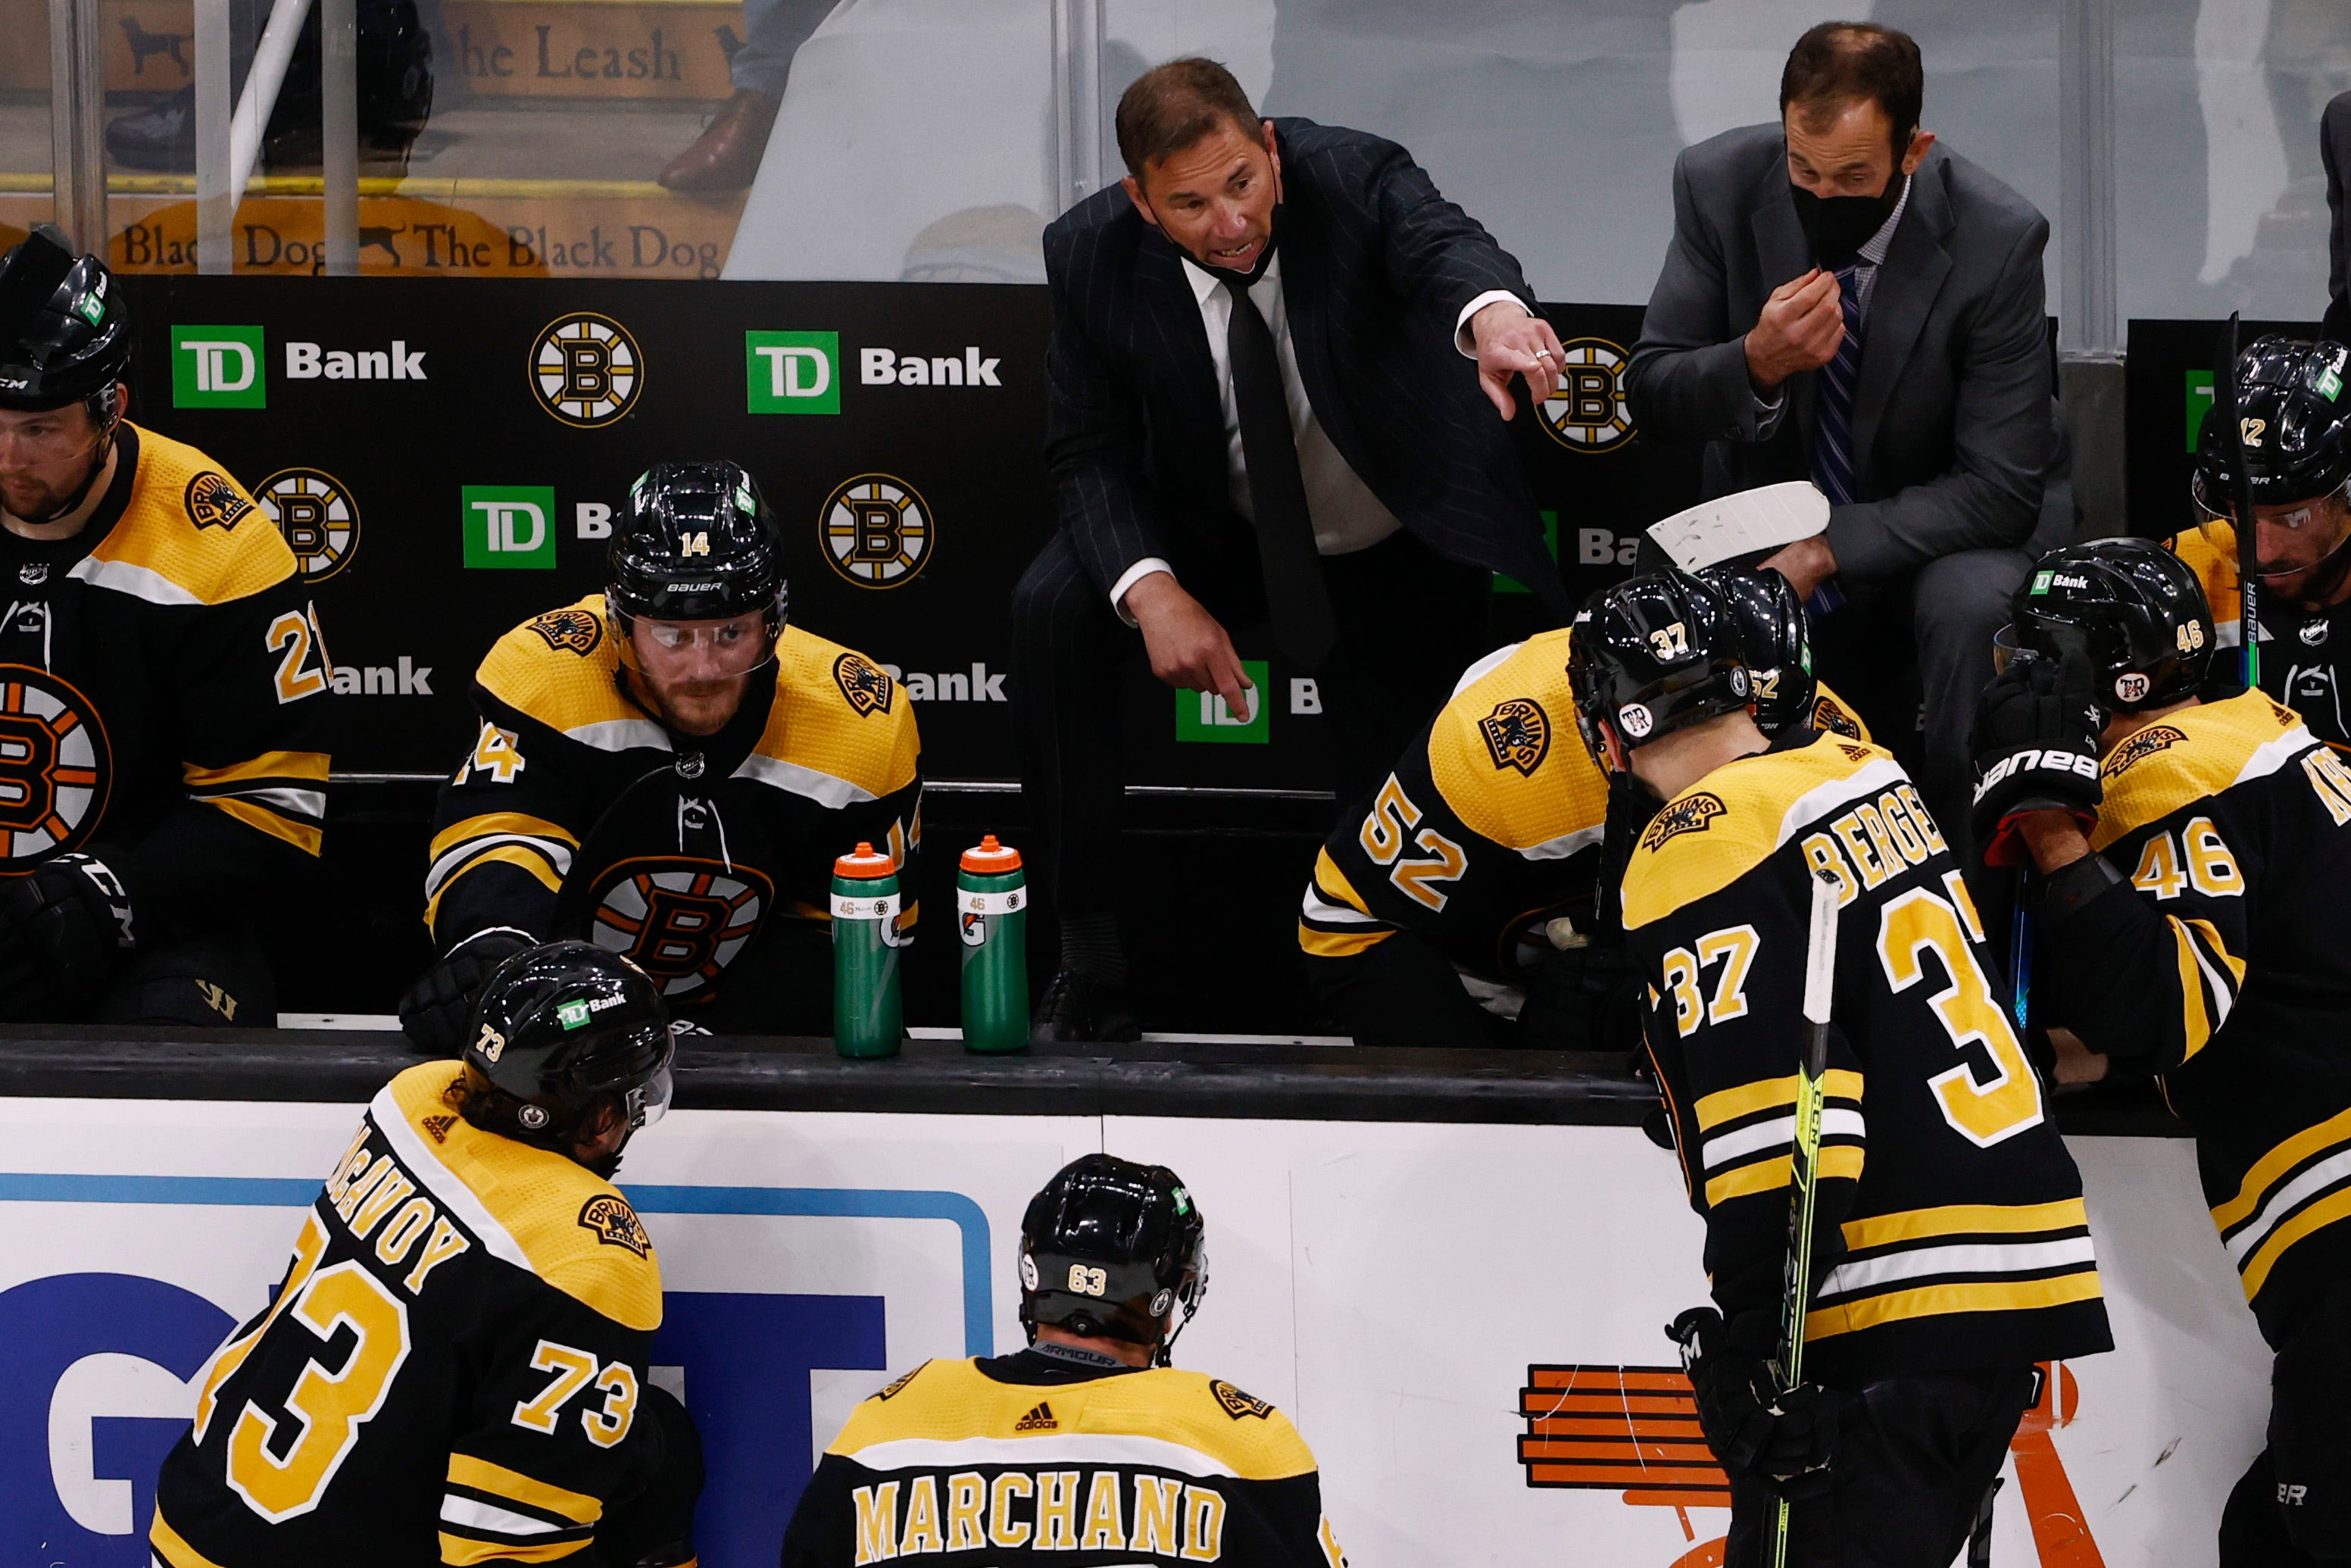 Bruins coach Bruce Cassidy fined $25,000 for ripping refs, calling Islanders 'New York Saints'